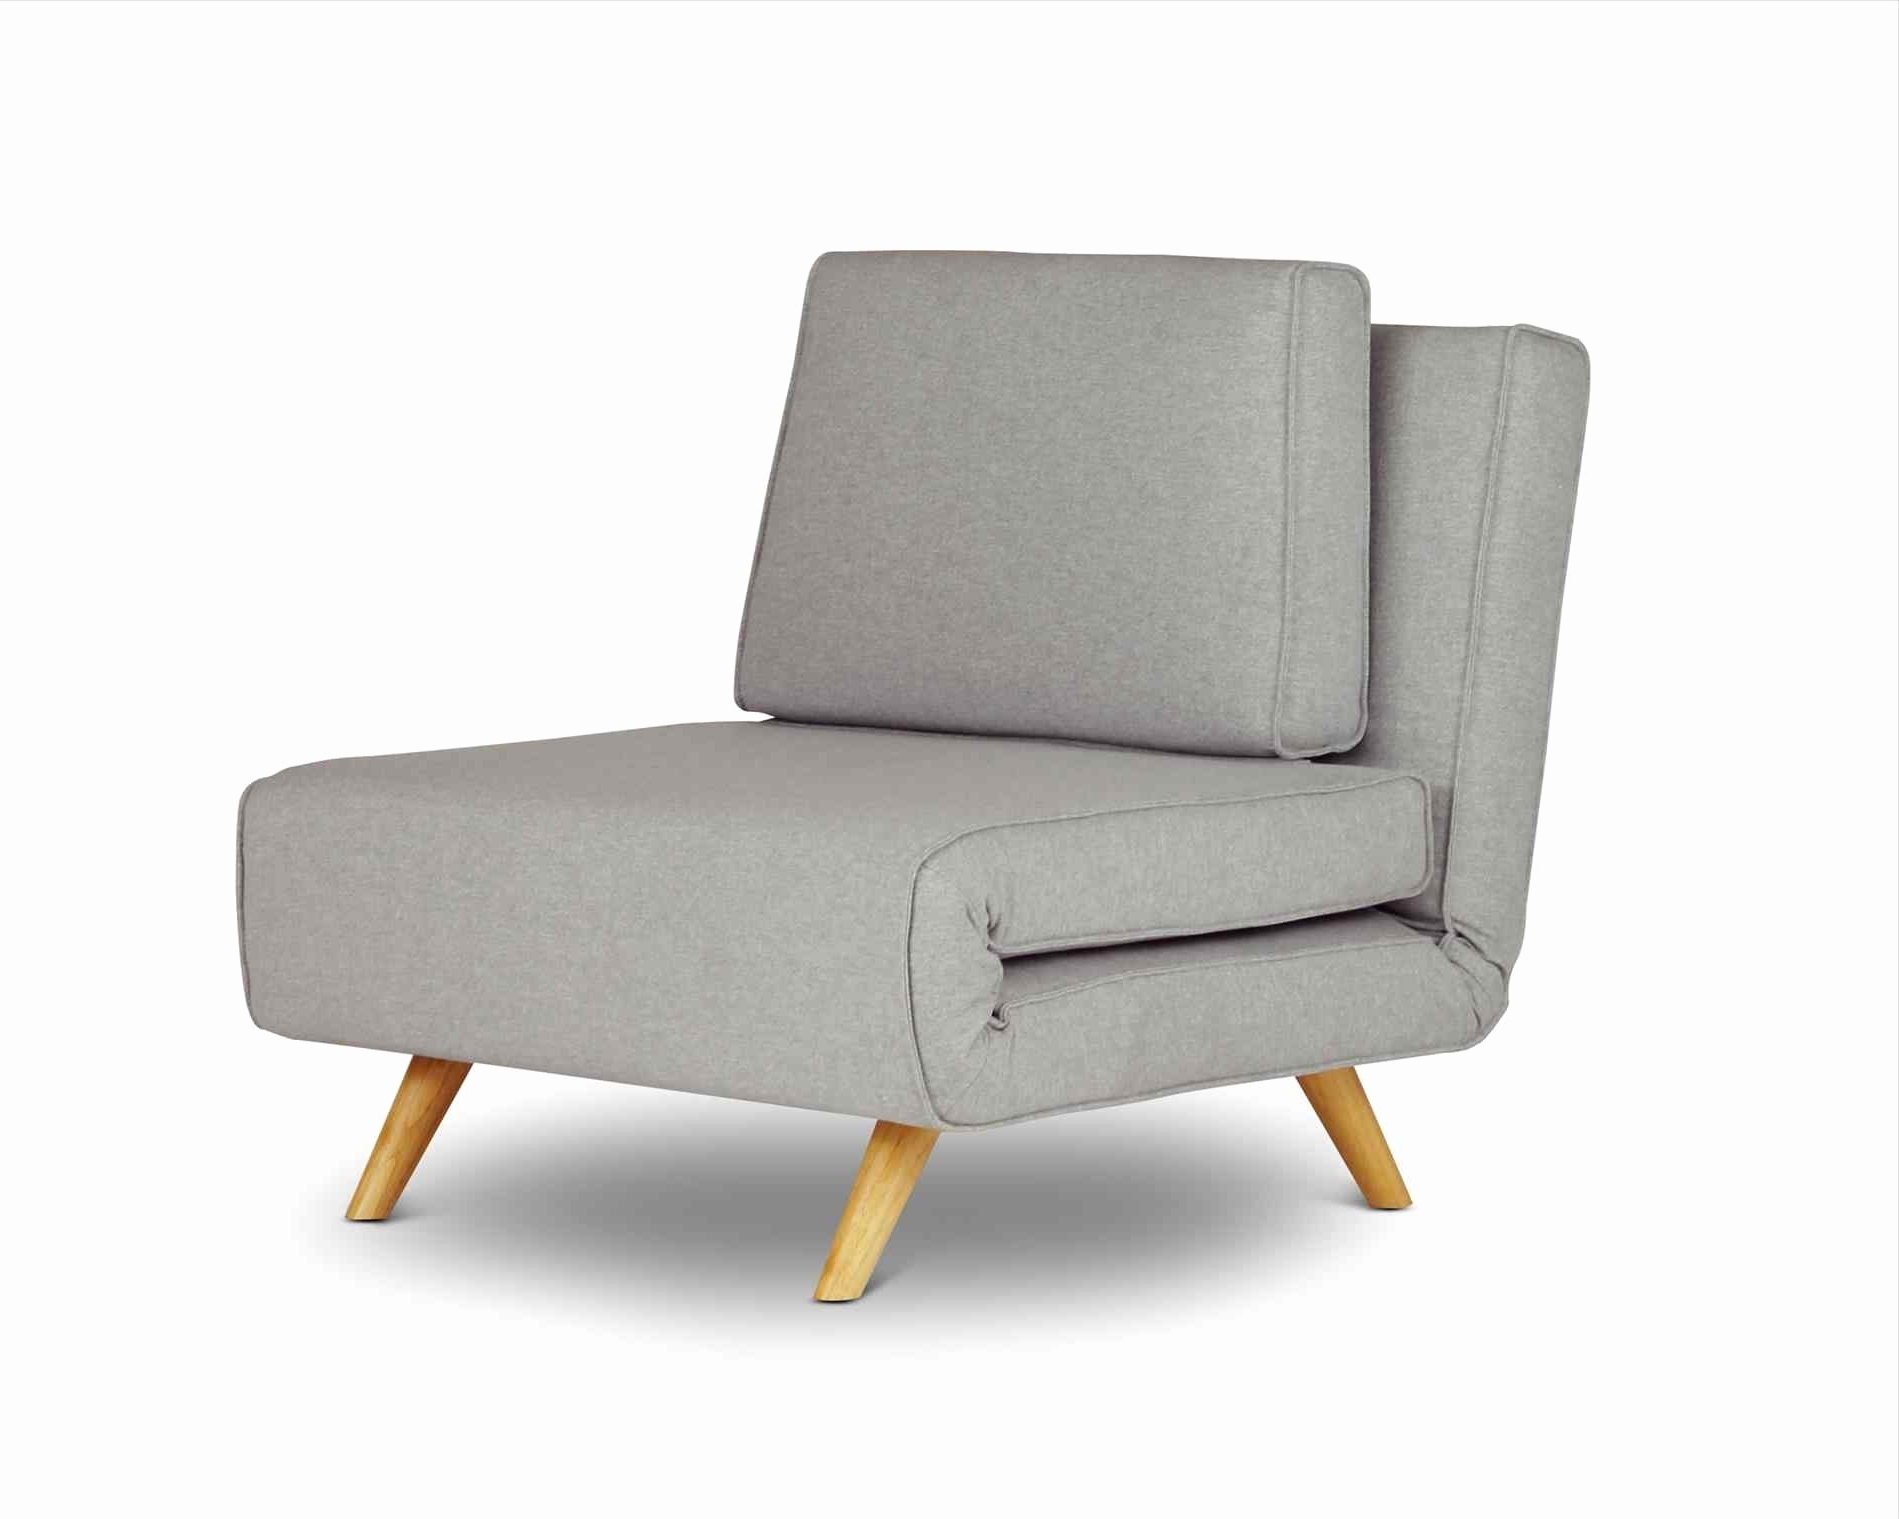 Favorite New Single Sofa For Sale 2018 – Couches Ideas In Single Sofas (View 15 of 20)